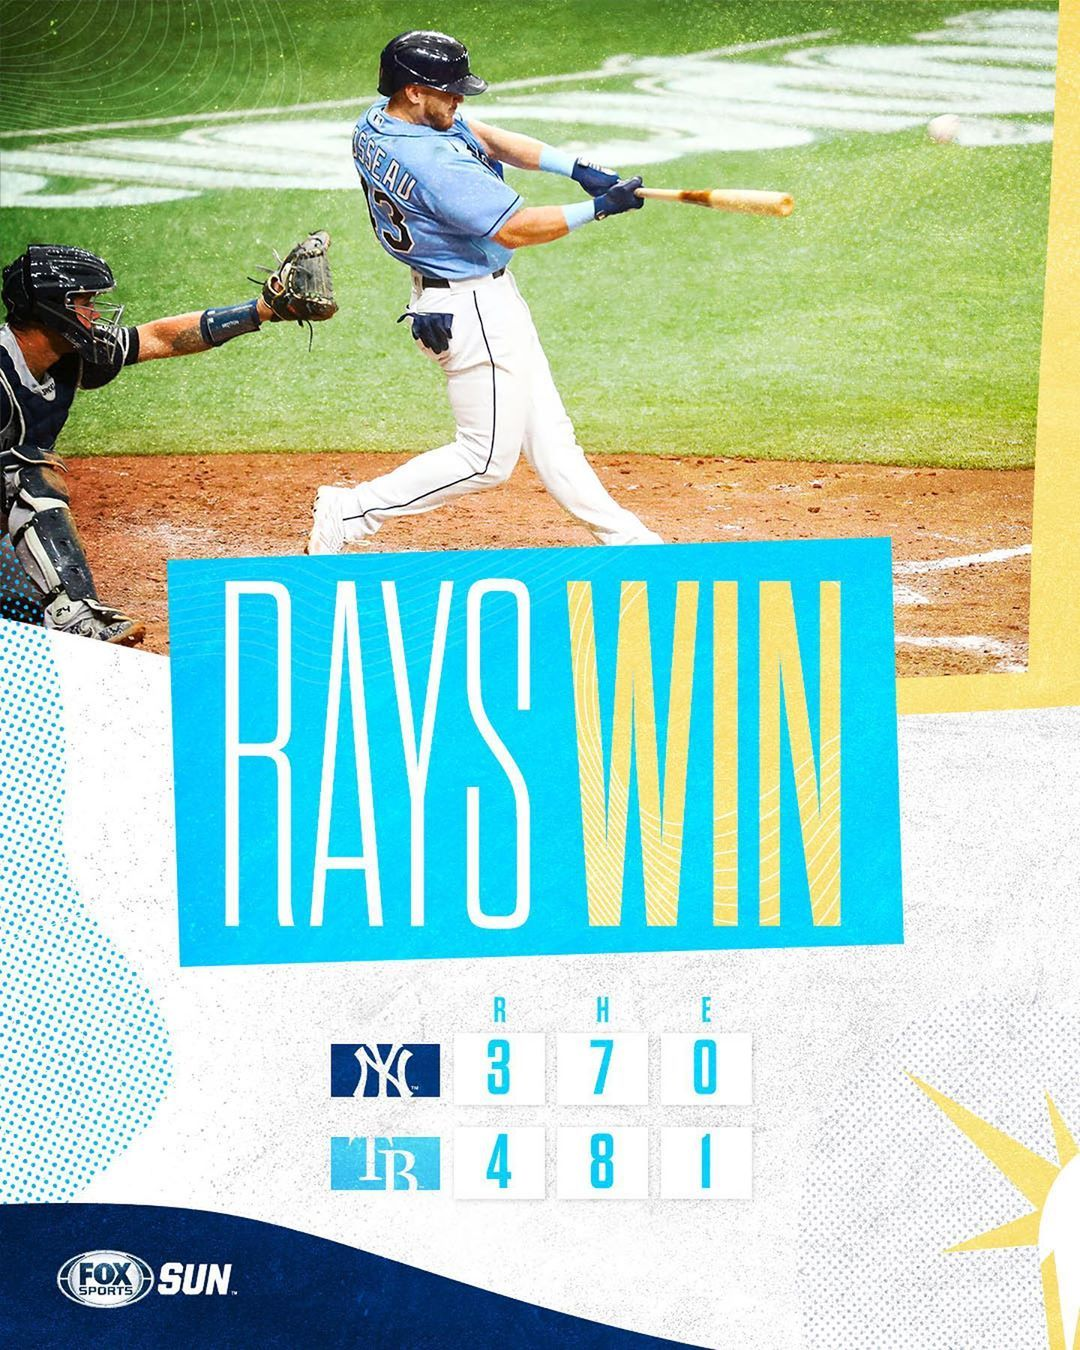 Tampa Bay Rays Rayswin Perez With A Walk Off Single To Take The Game And Series Tampa Bay Rays Tampa Bay Tampa